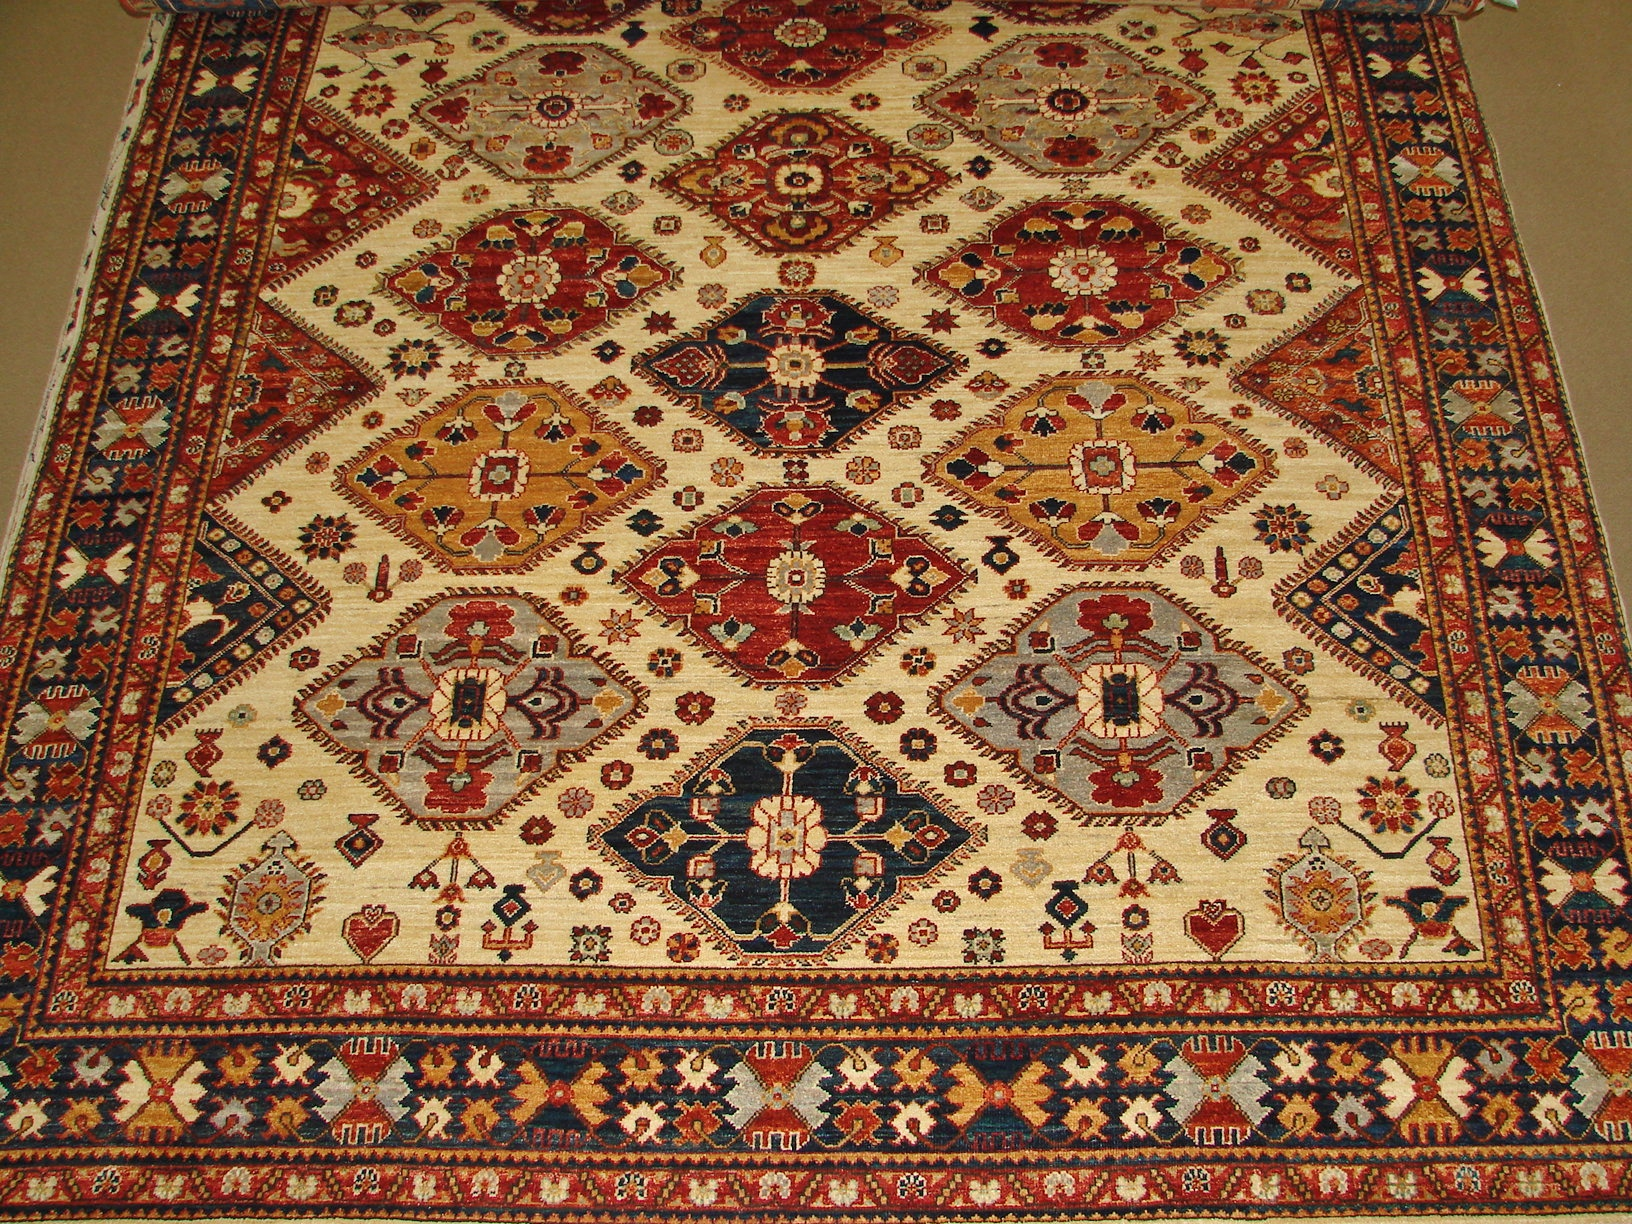 8x10 Peshawar Hand Knotted Wool Area Rug - MR16144